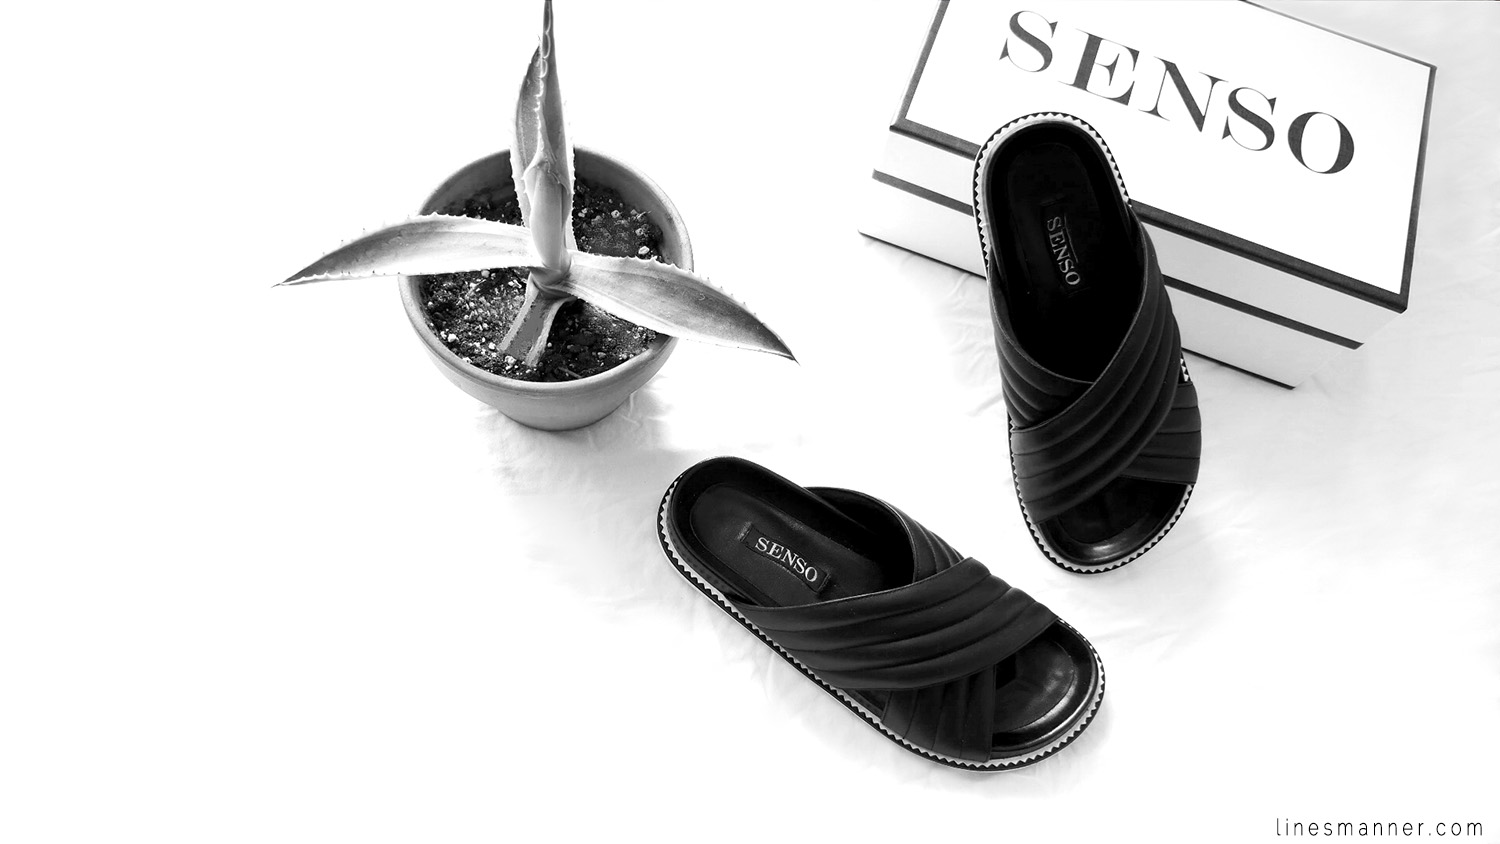 Senso_Shoes (2of4)